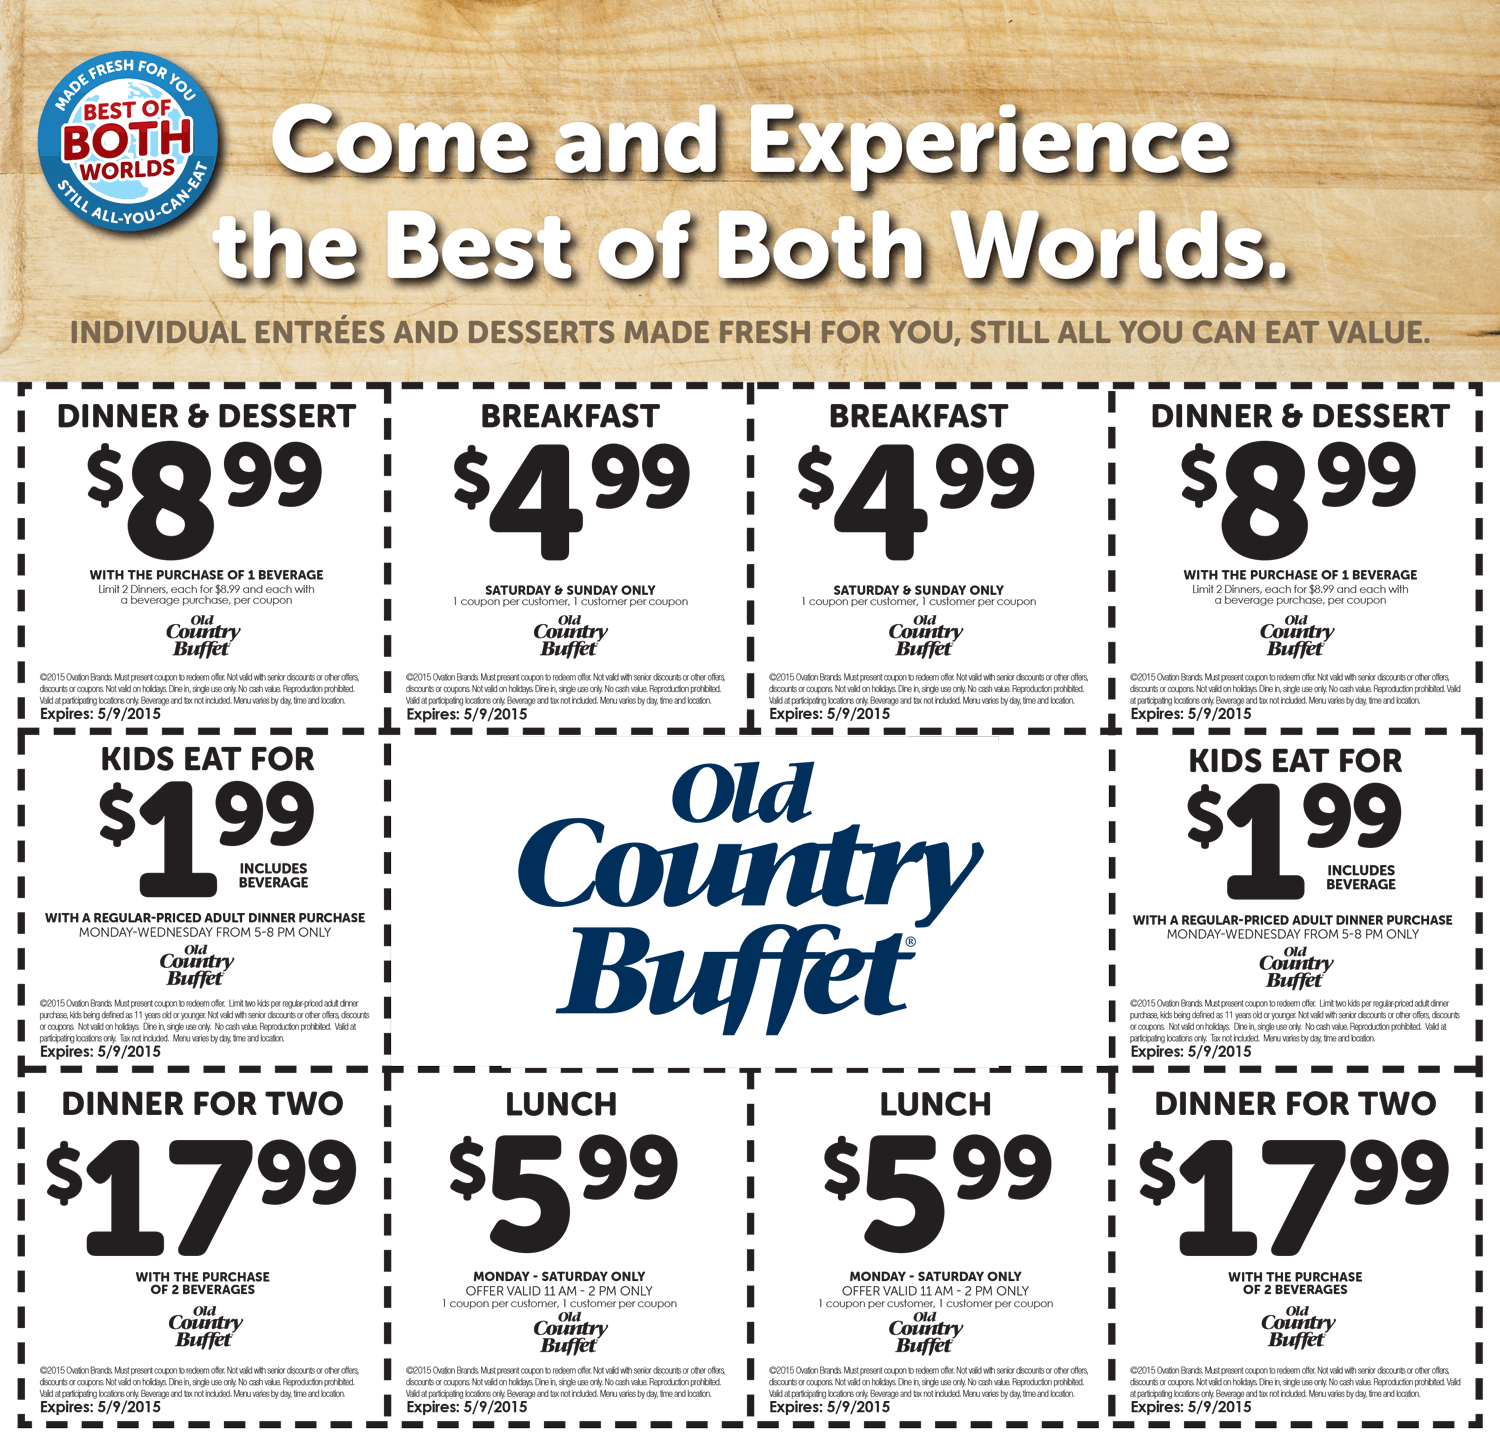 photo relating to Old Country Buffet Printable Coupons Buy One Get One Free titled Outdated State Buffet Discount coupons - $2 youngsters, $5 breakfast, $6 lunch